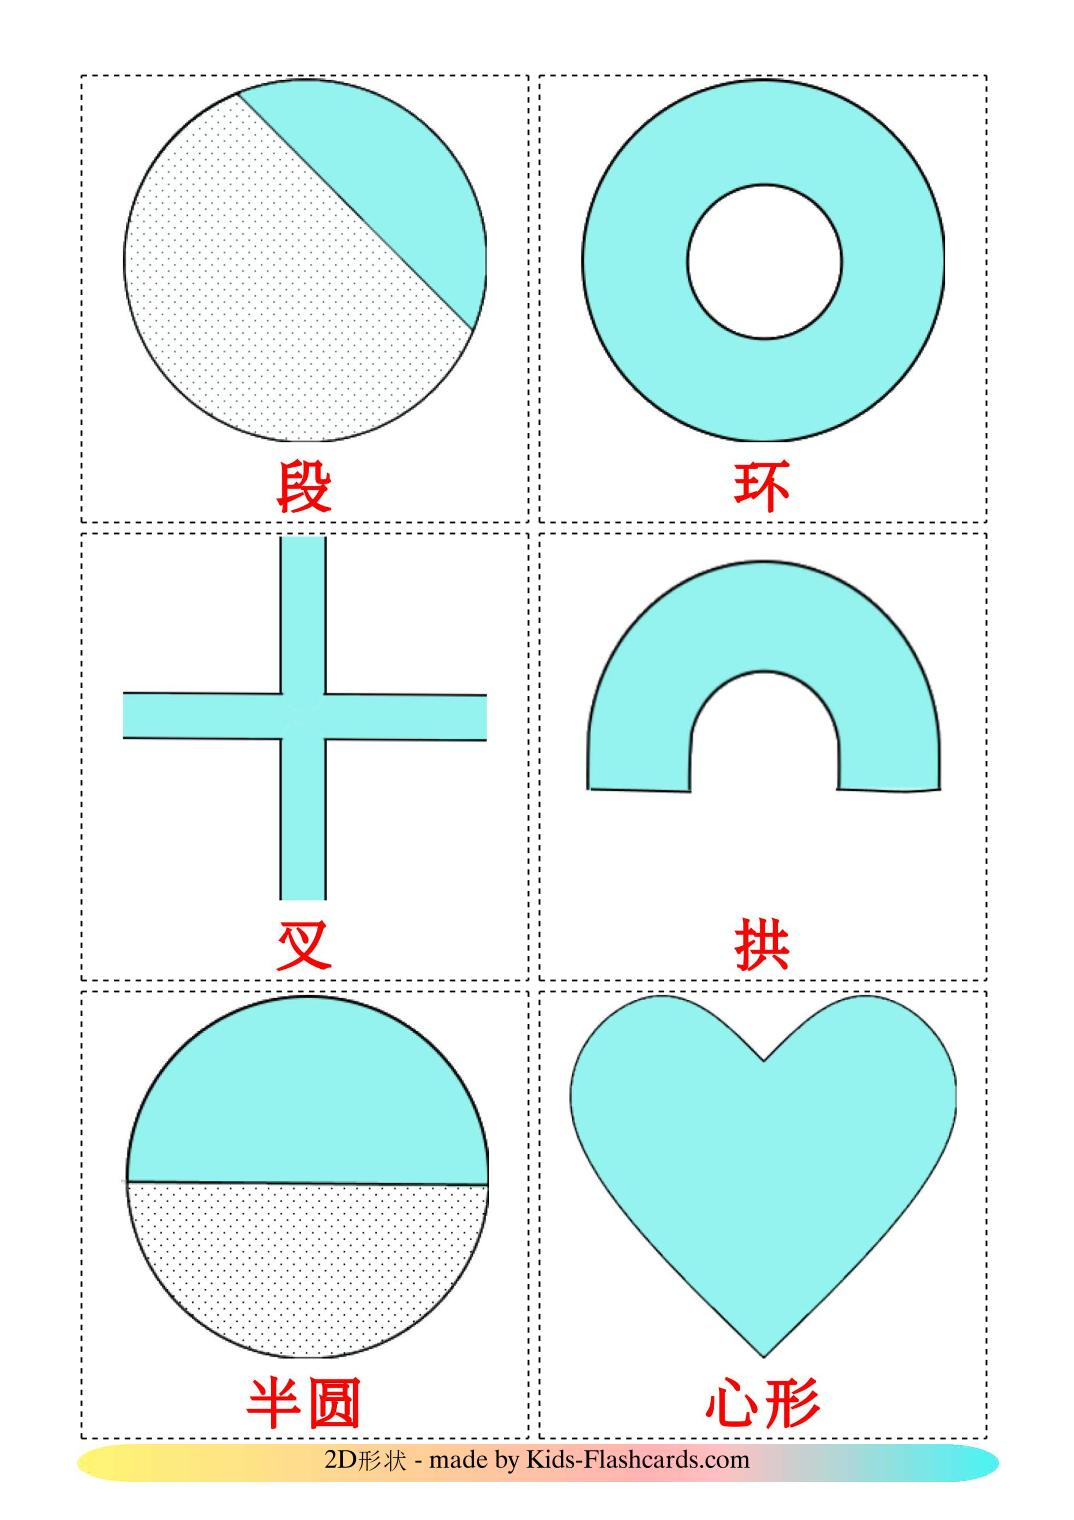 2D Shapes - 35 Free Printable chinese(Simplified) Flashcards